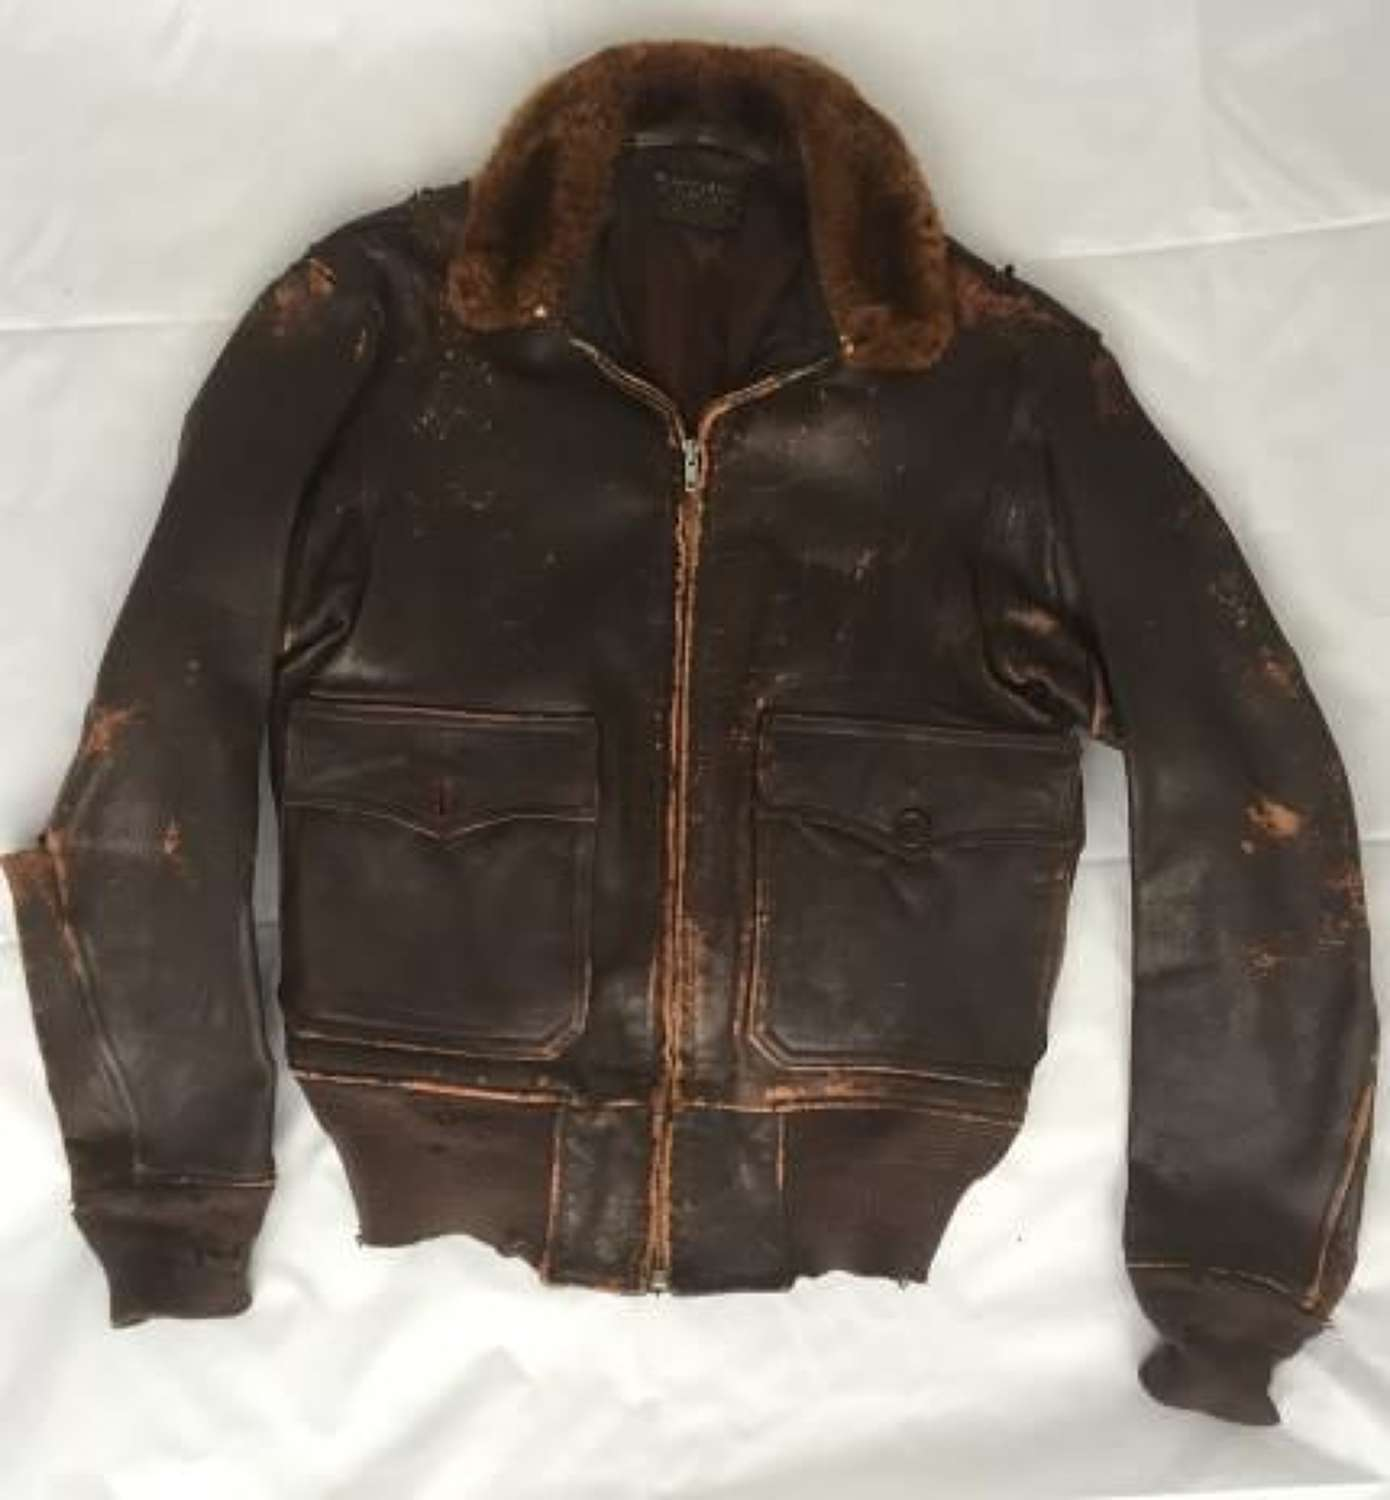 Original US Navy G-1 Flying Jacket - First Contract Made By L. W. Fost